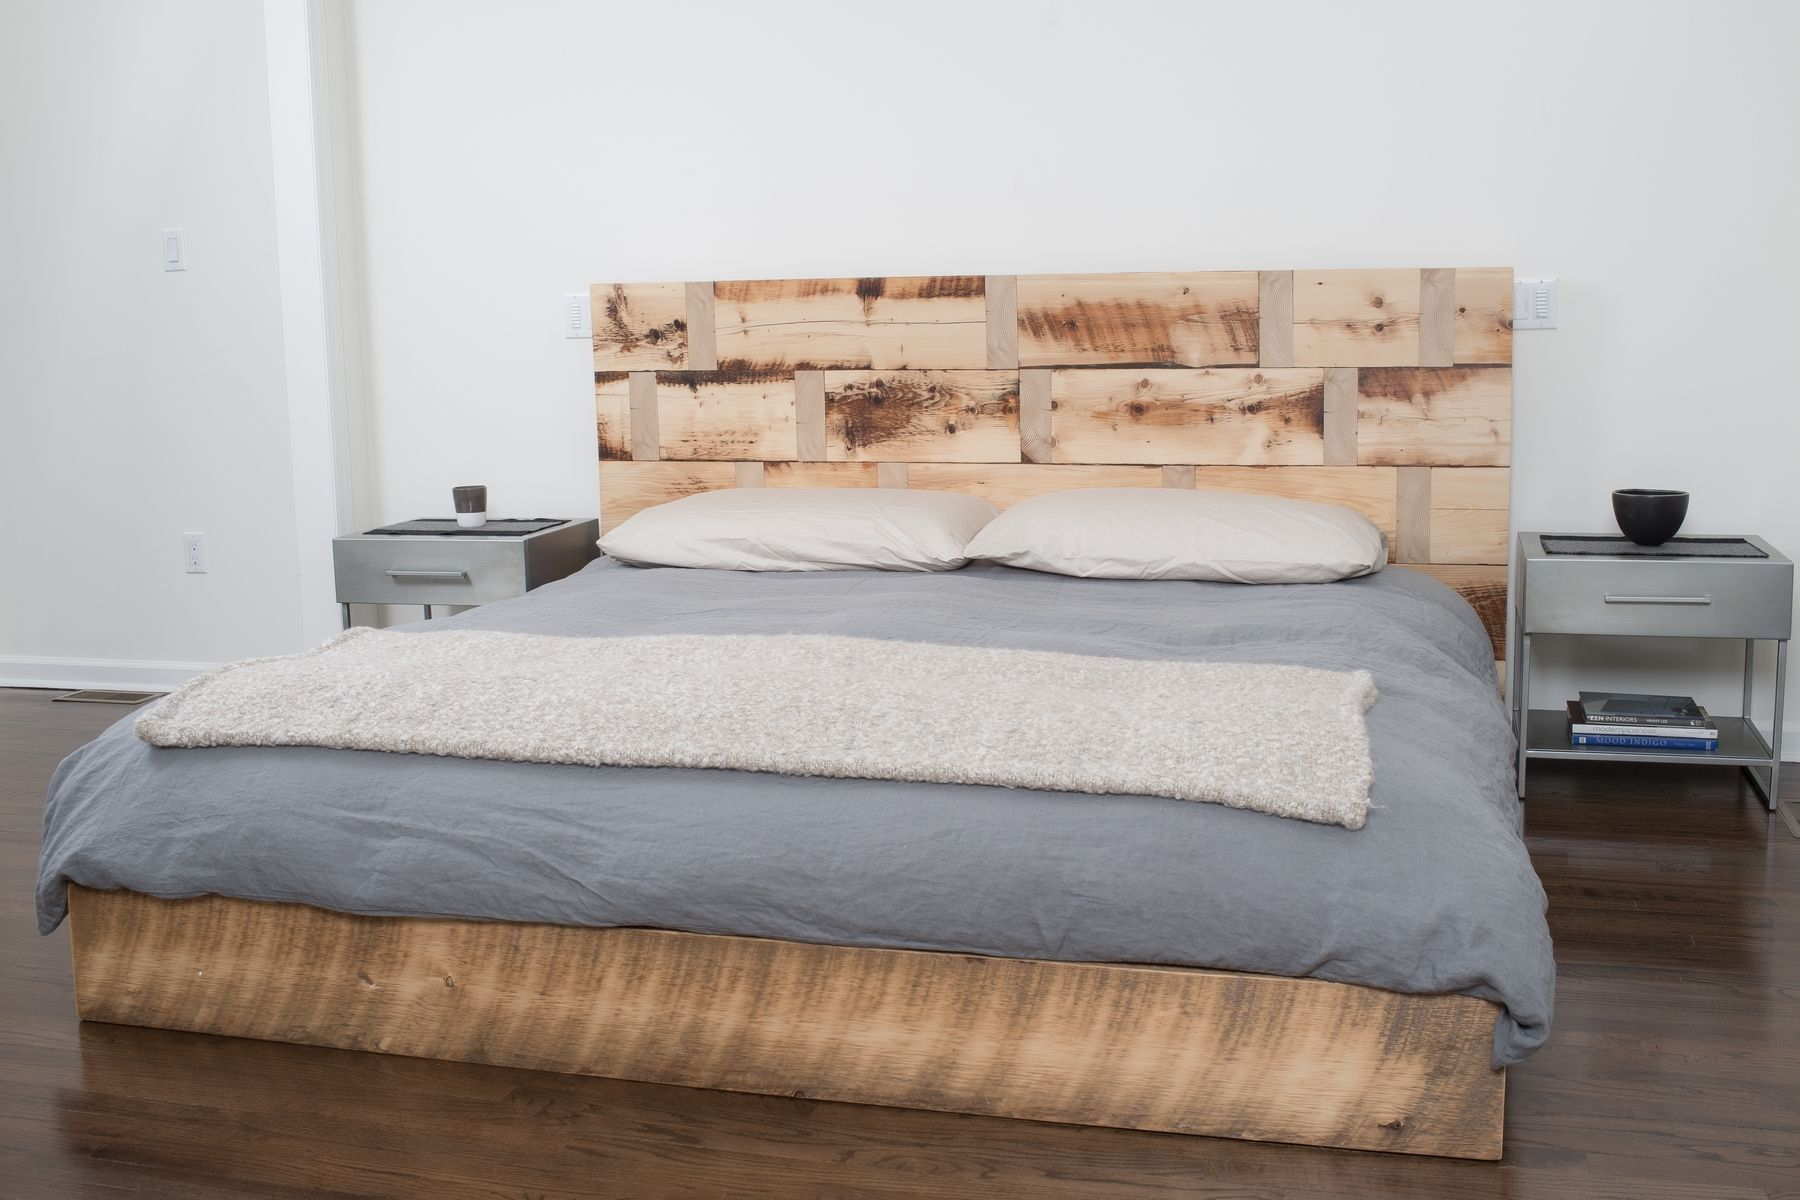 hand made reclaimed wood platform bed by rhg architecture design. Black Bedroom Furniture Sets. Home Design Ideas